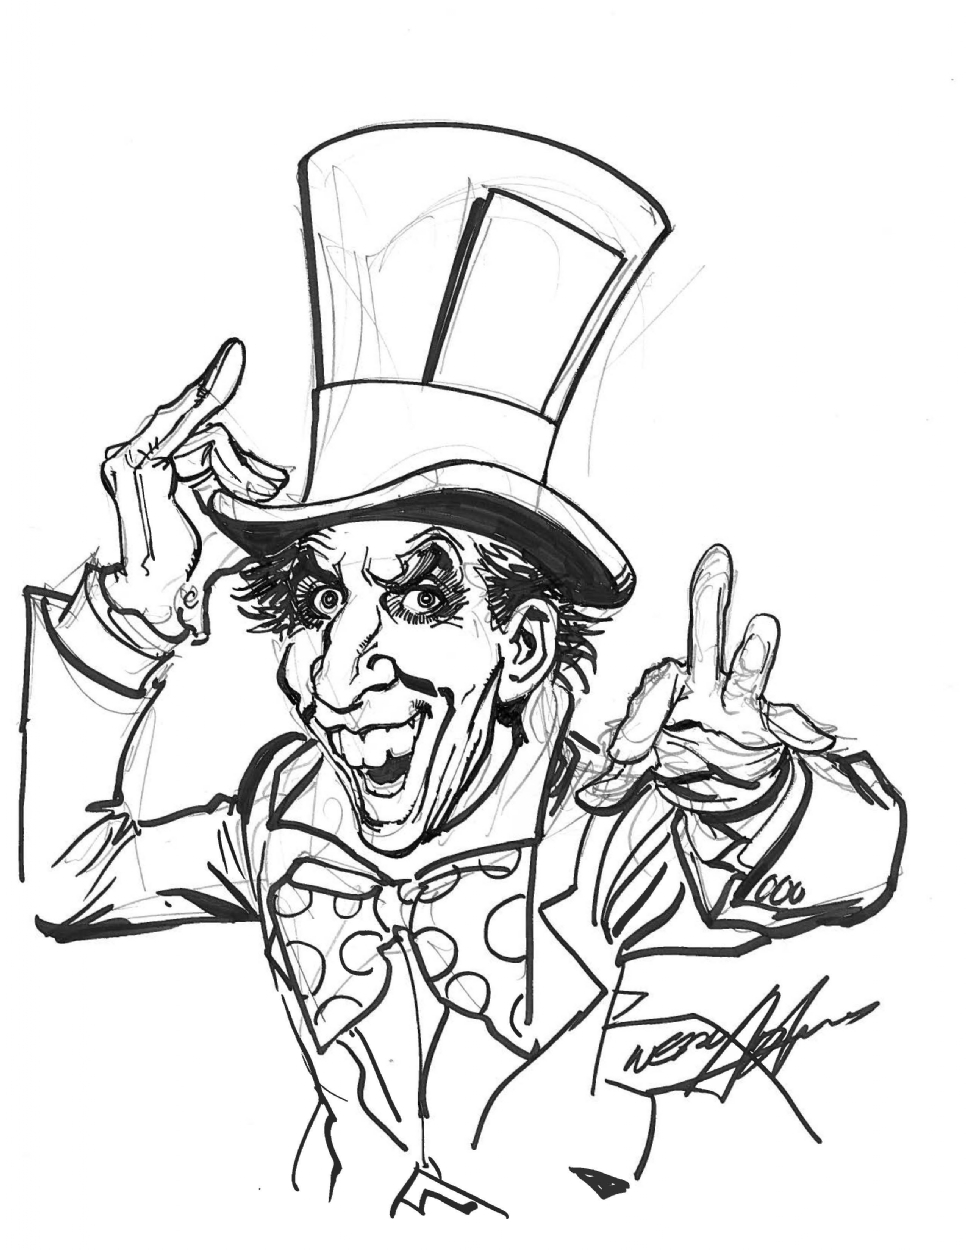 966x1250 Mad Hatter By Neal Adams, In Ethan Kaye's Convention Sketches